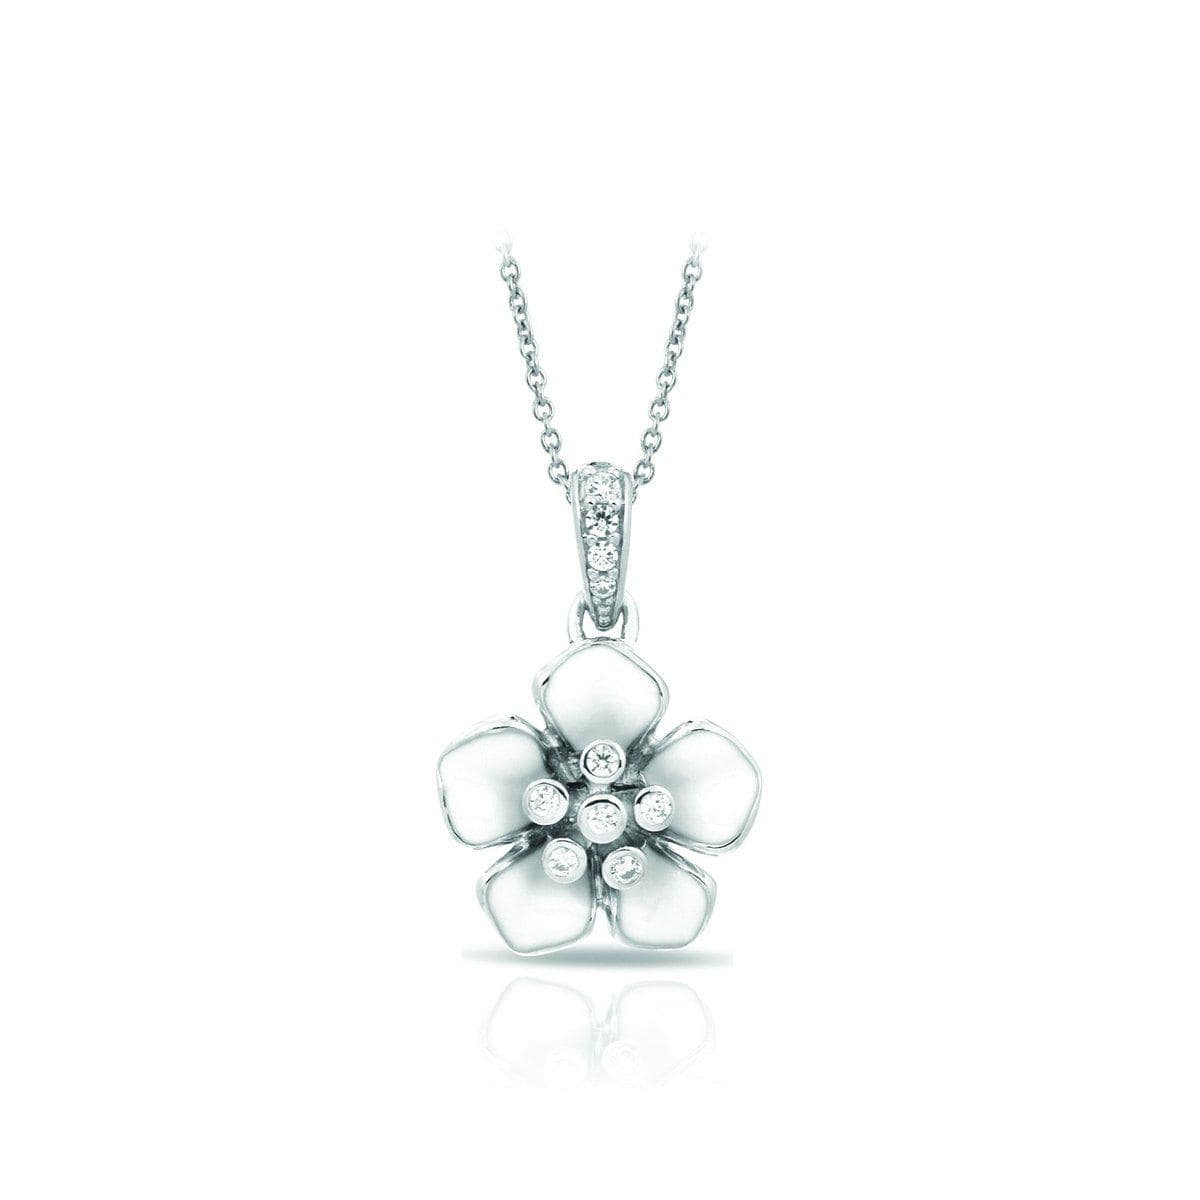 Forget-Me-Not White Pendant-Belle Etoile-Renee Taylor Gallery